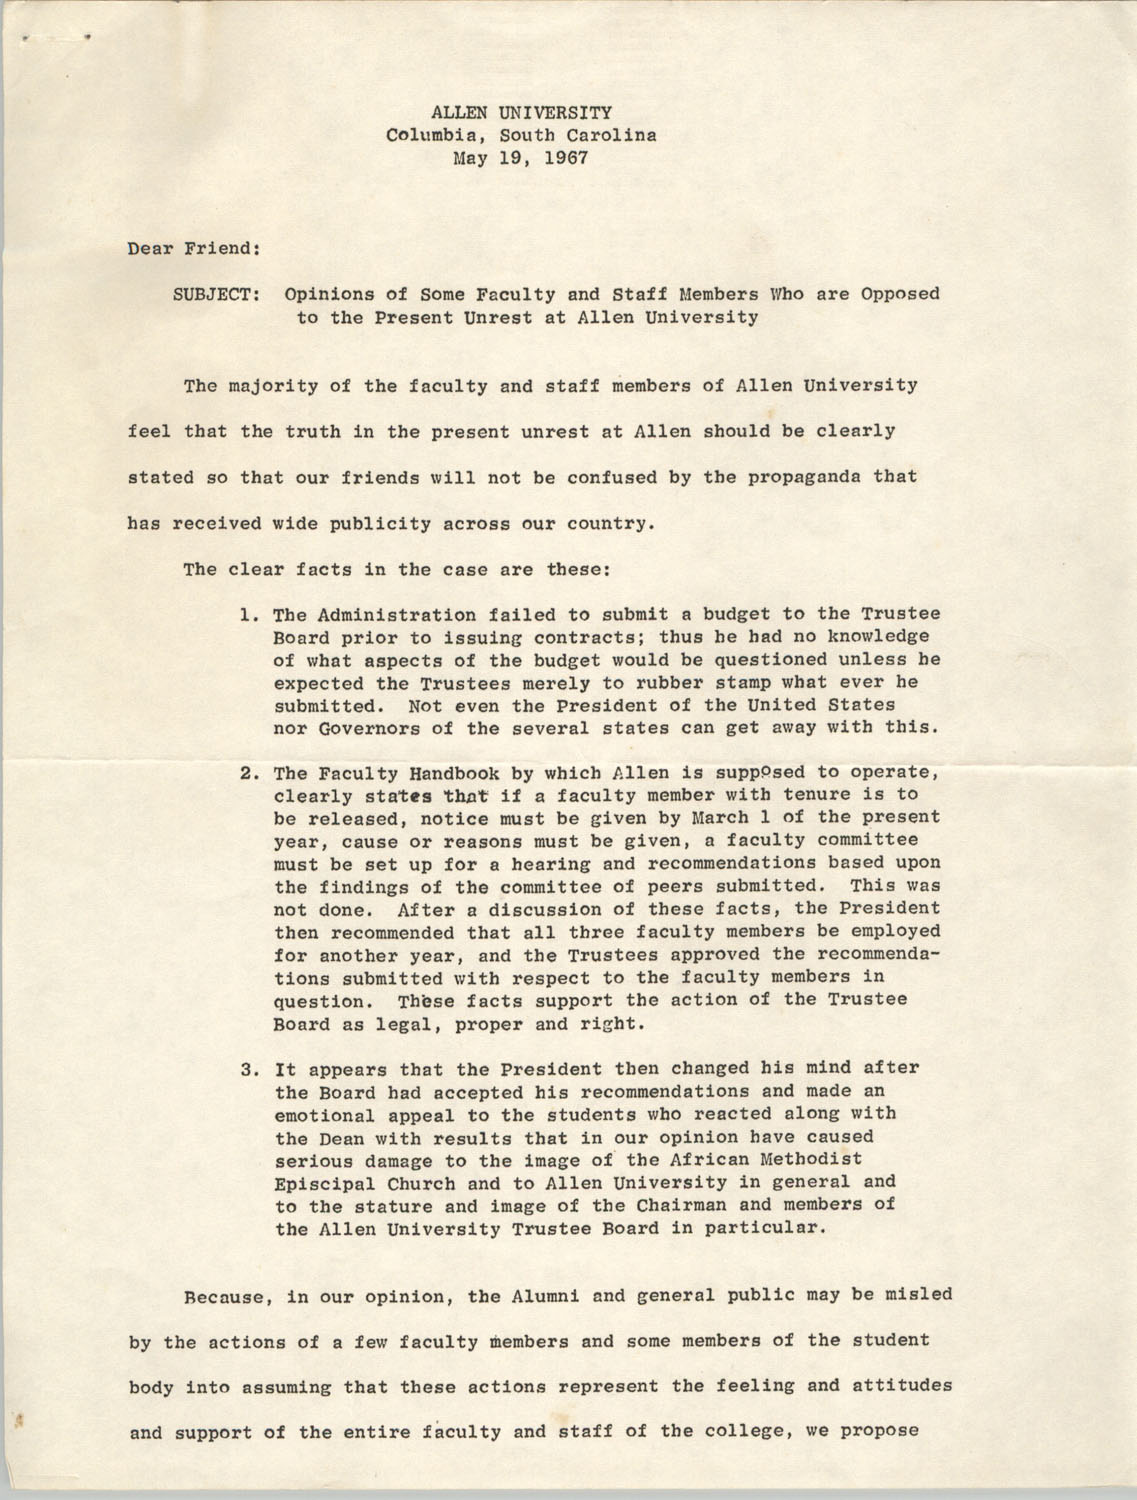 Letter from Allen University, May 19, 1967